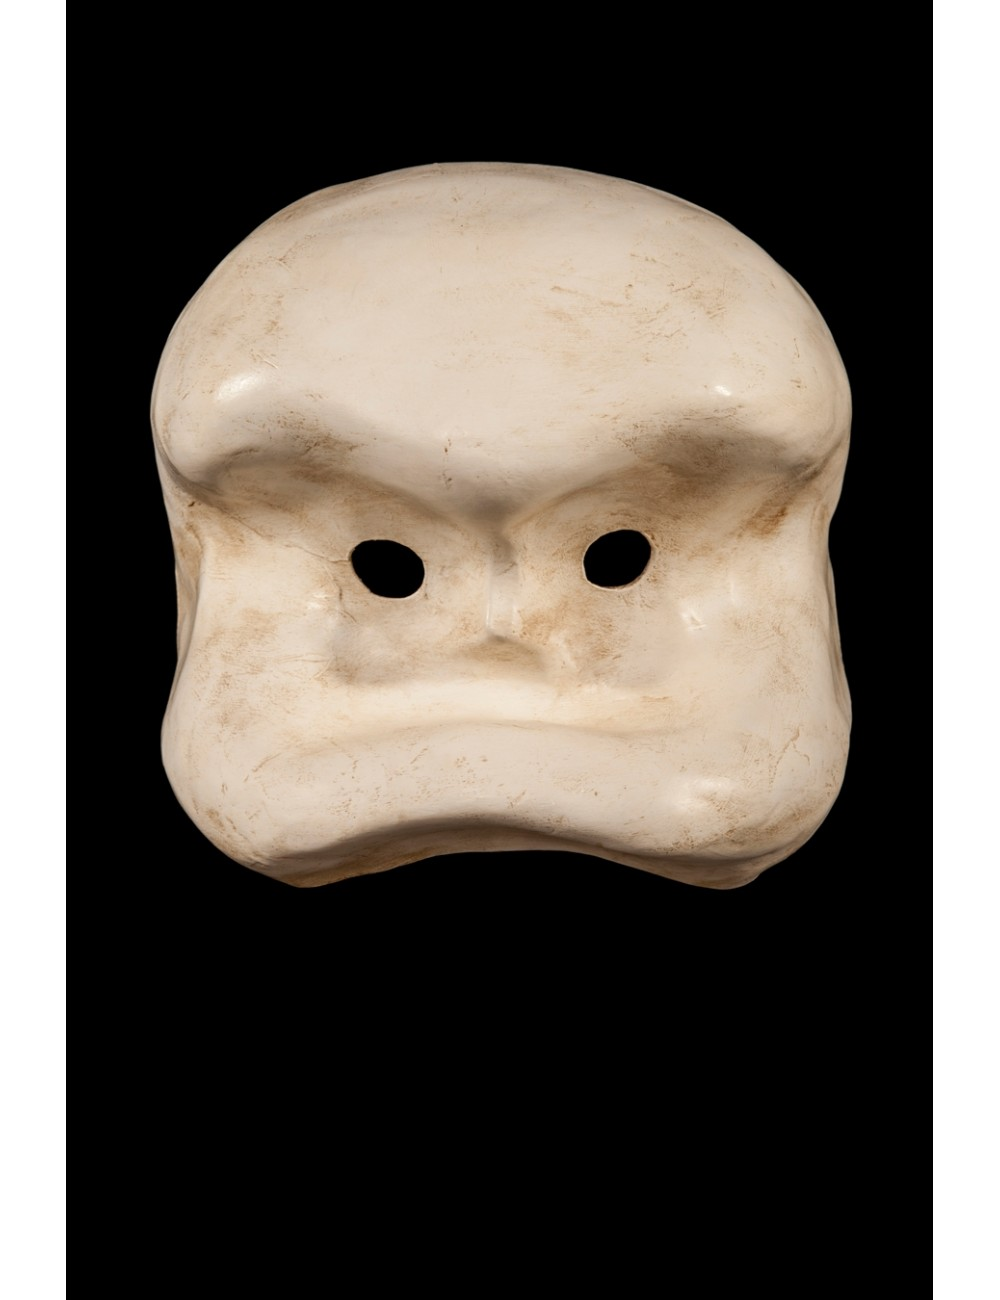 https://originalveniceshop.com/5436-thickbox_default/neutral-larval-mask-iii.jpg